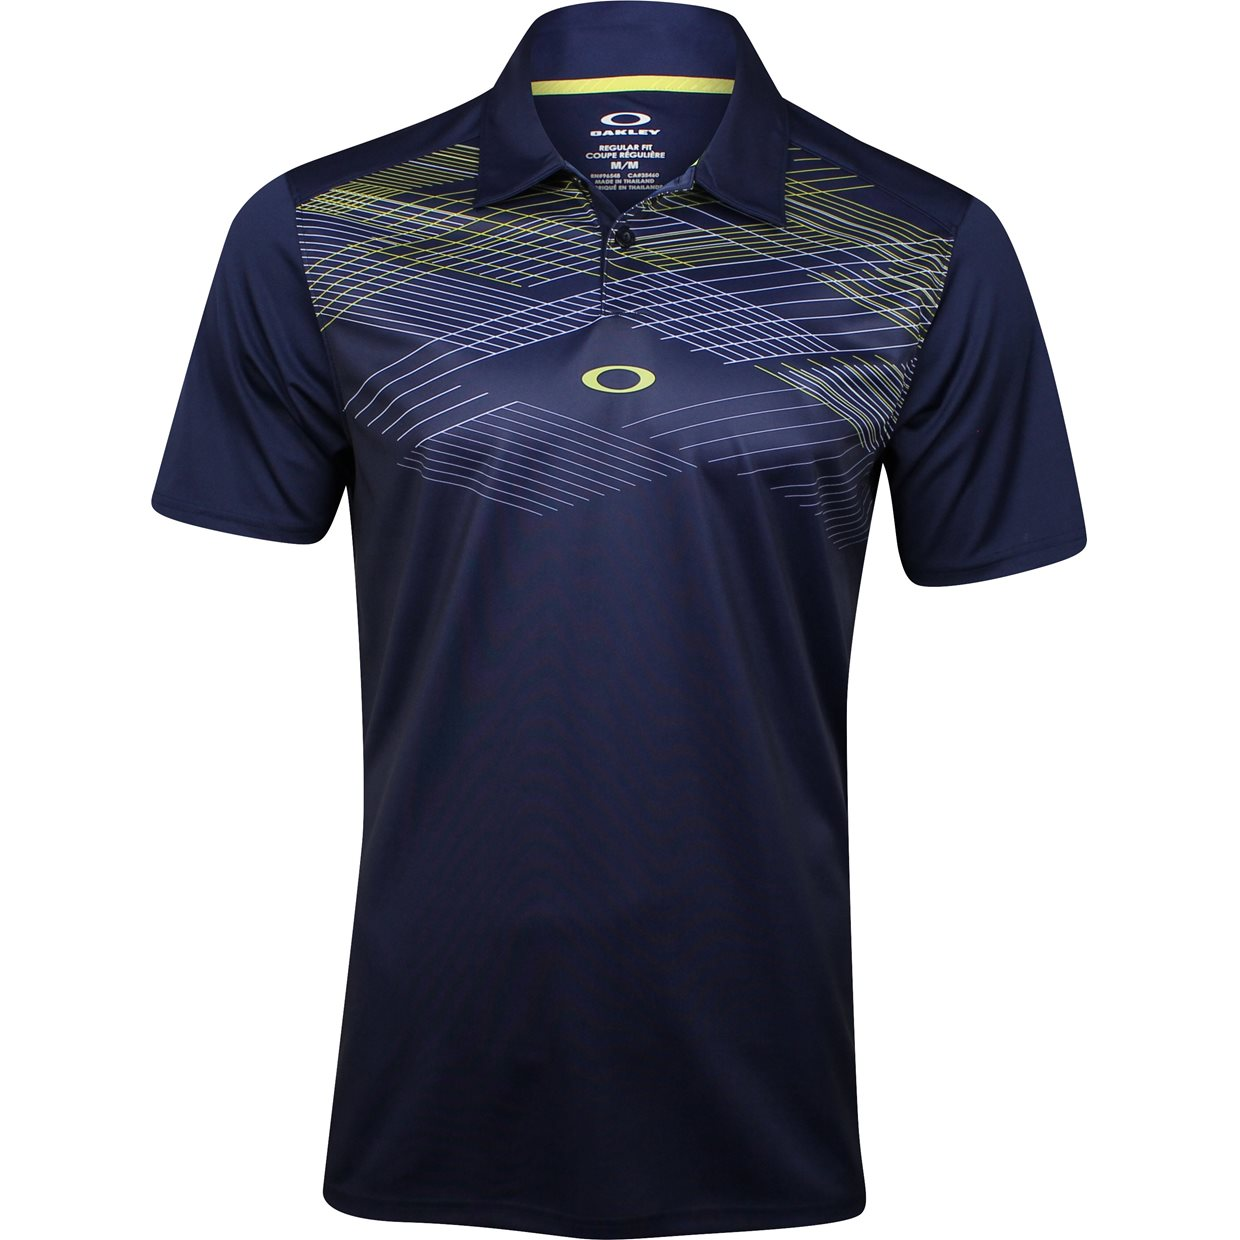 discount oakley golf shirts 9td2  discount oakley golf shirts